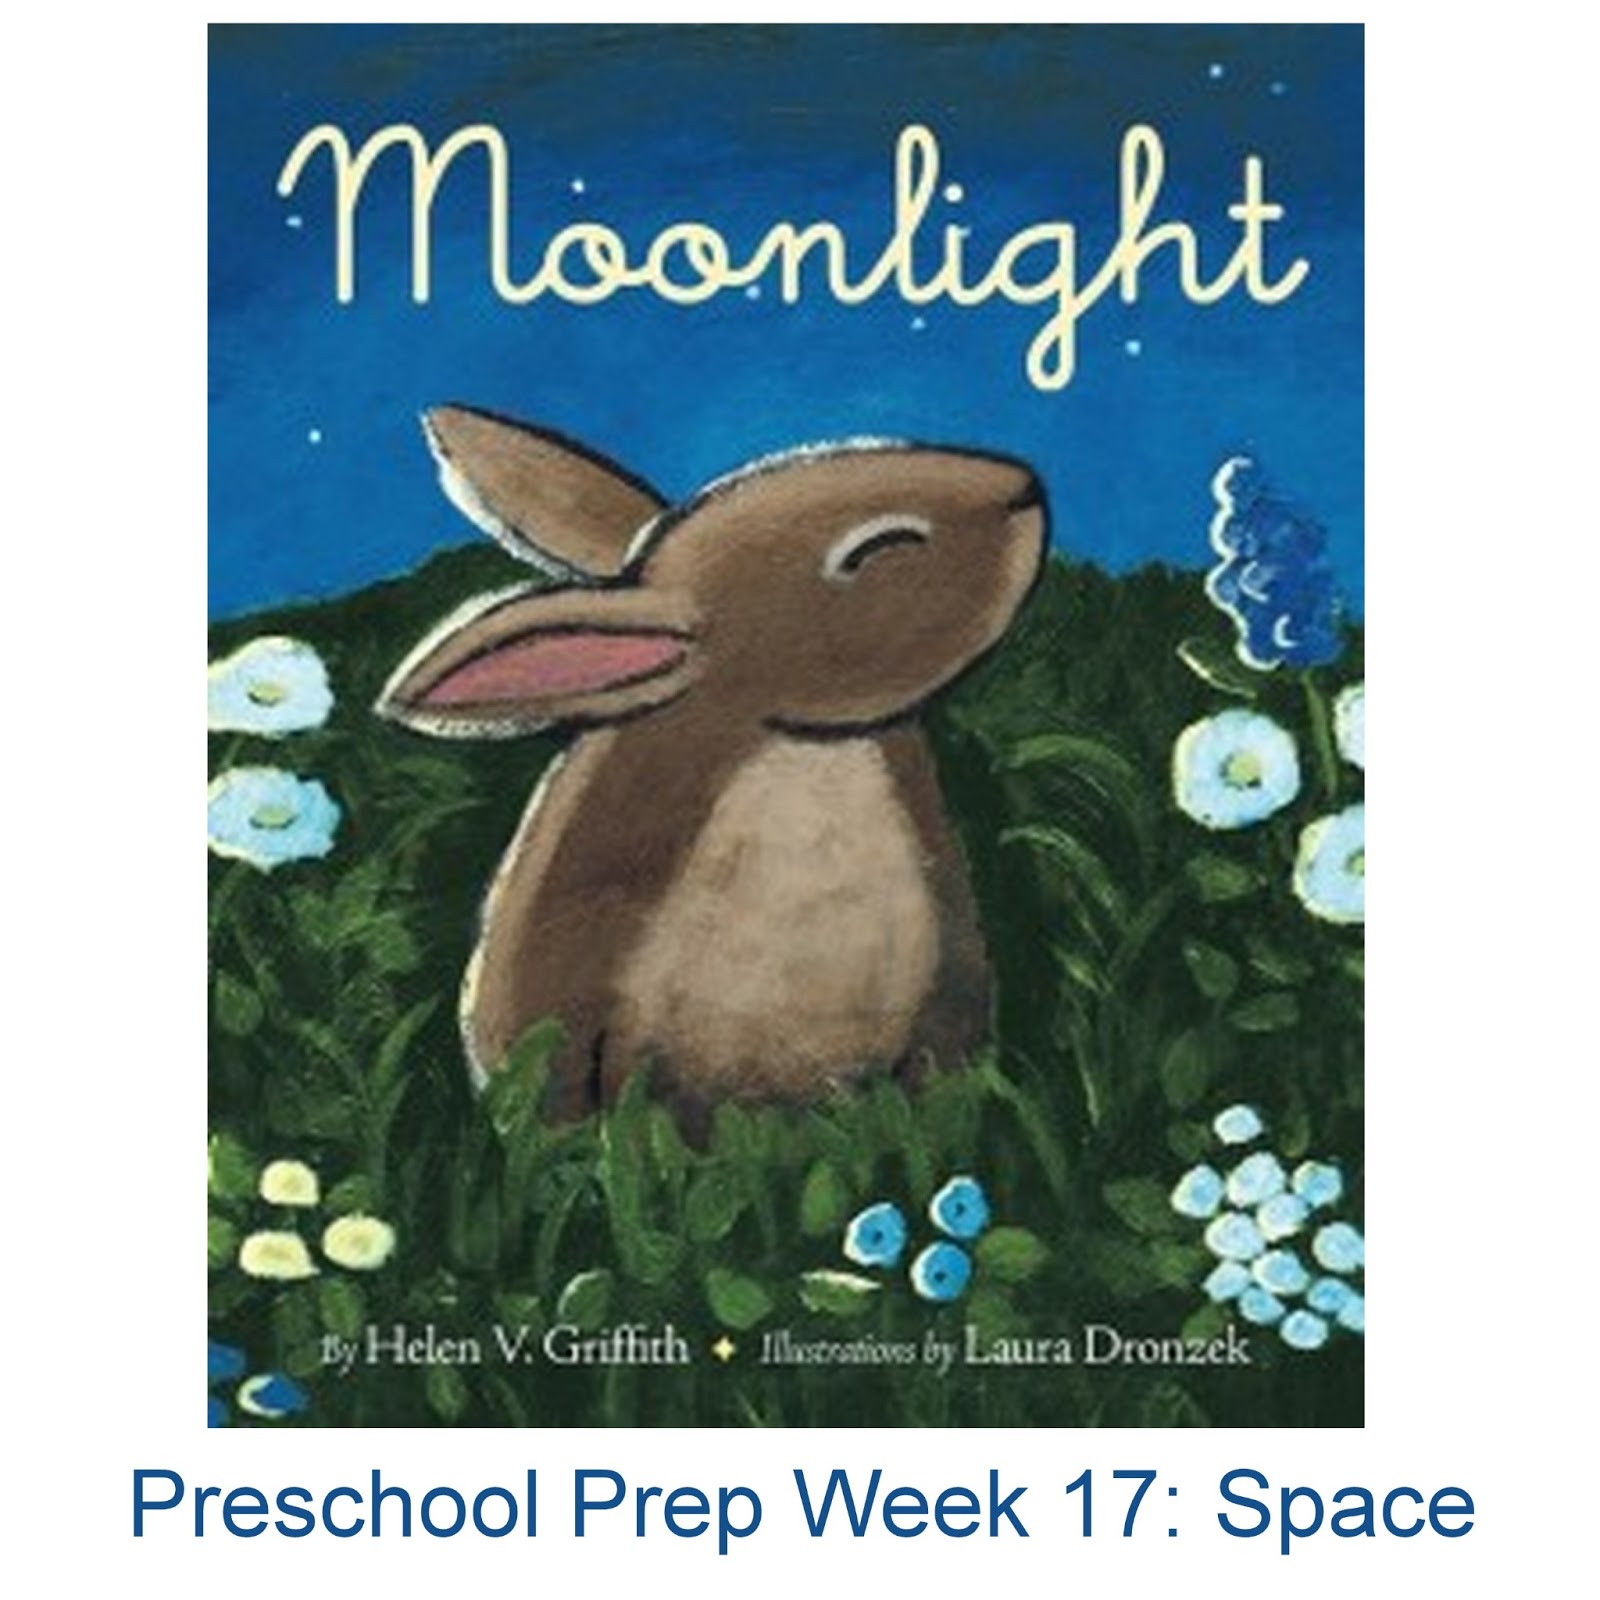 Your Daily Tidbit: Preschool Prep Week 17: Space